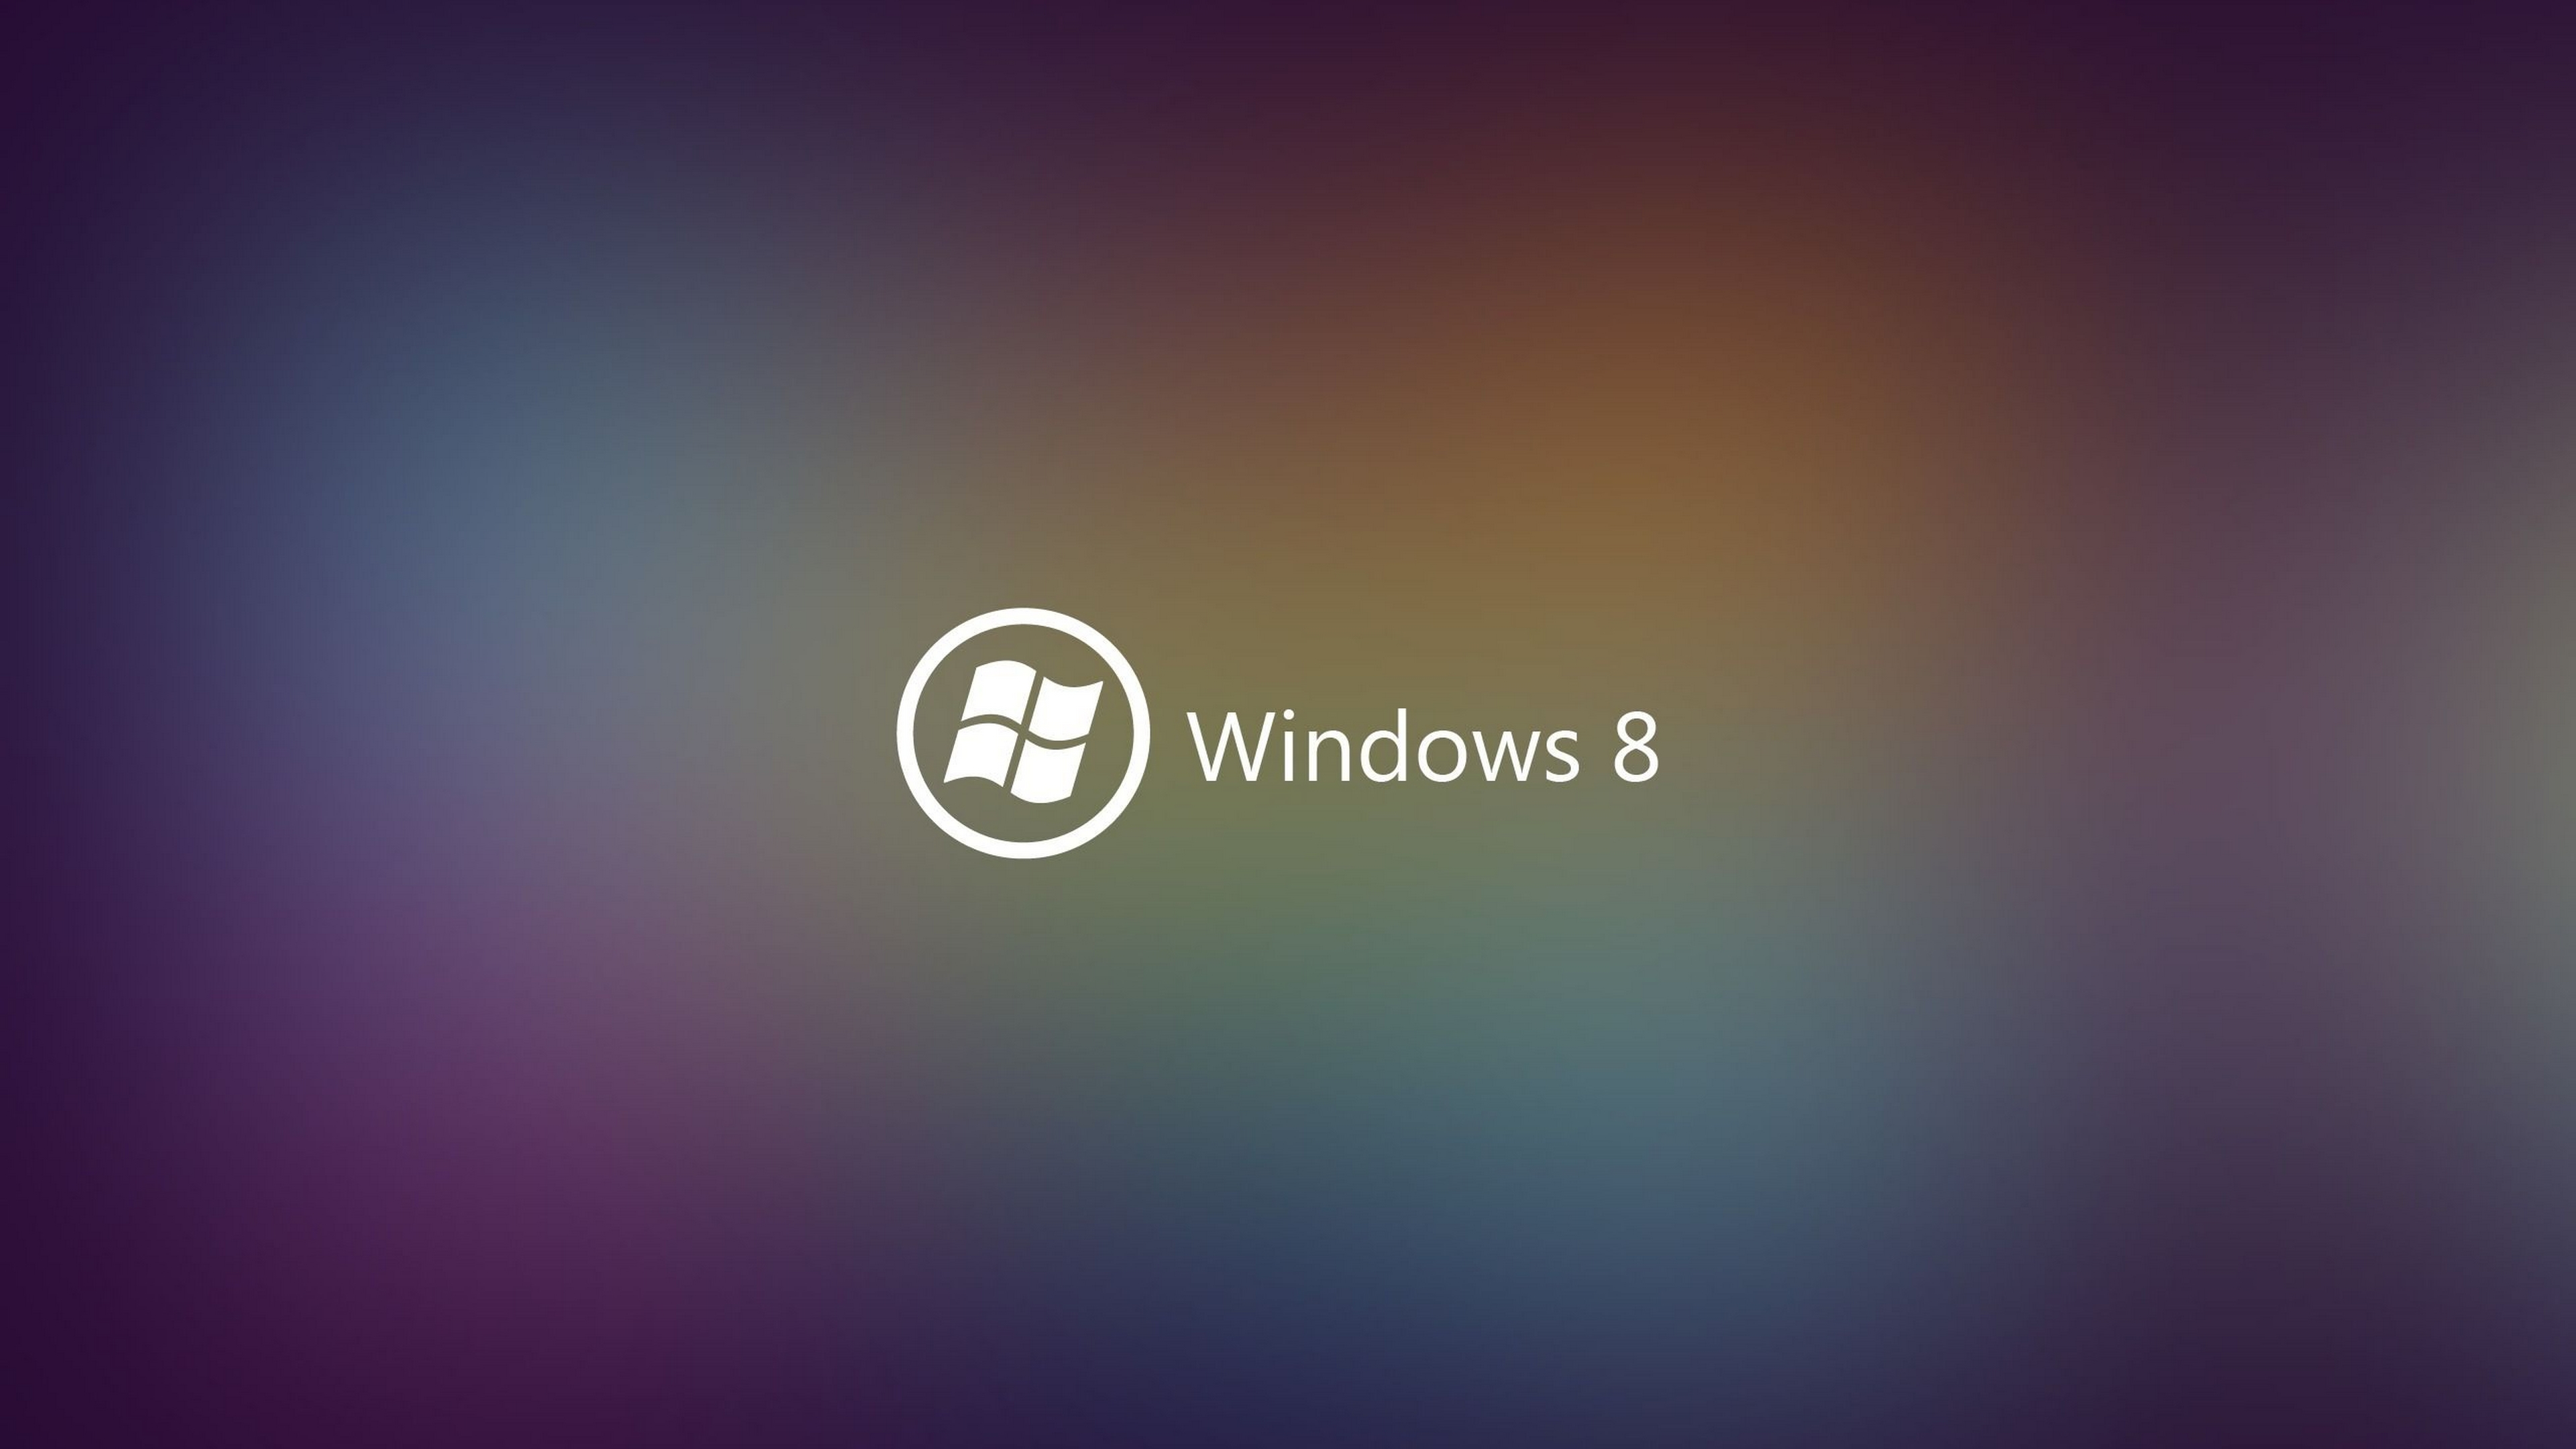 windows 8 wallpaper 4k background